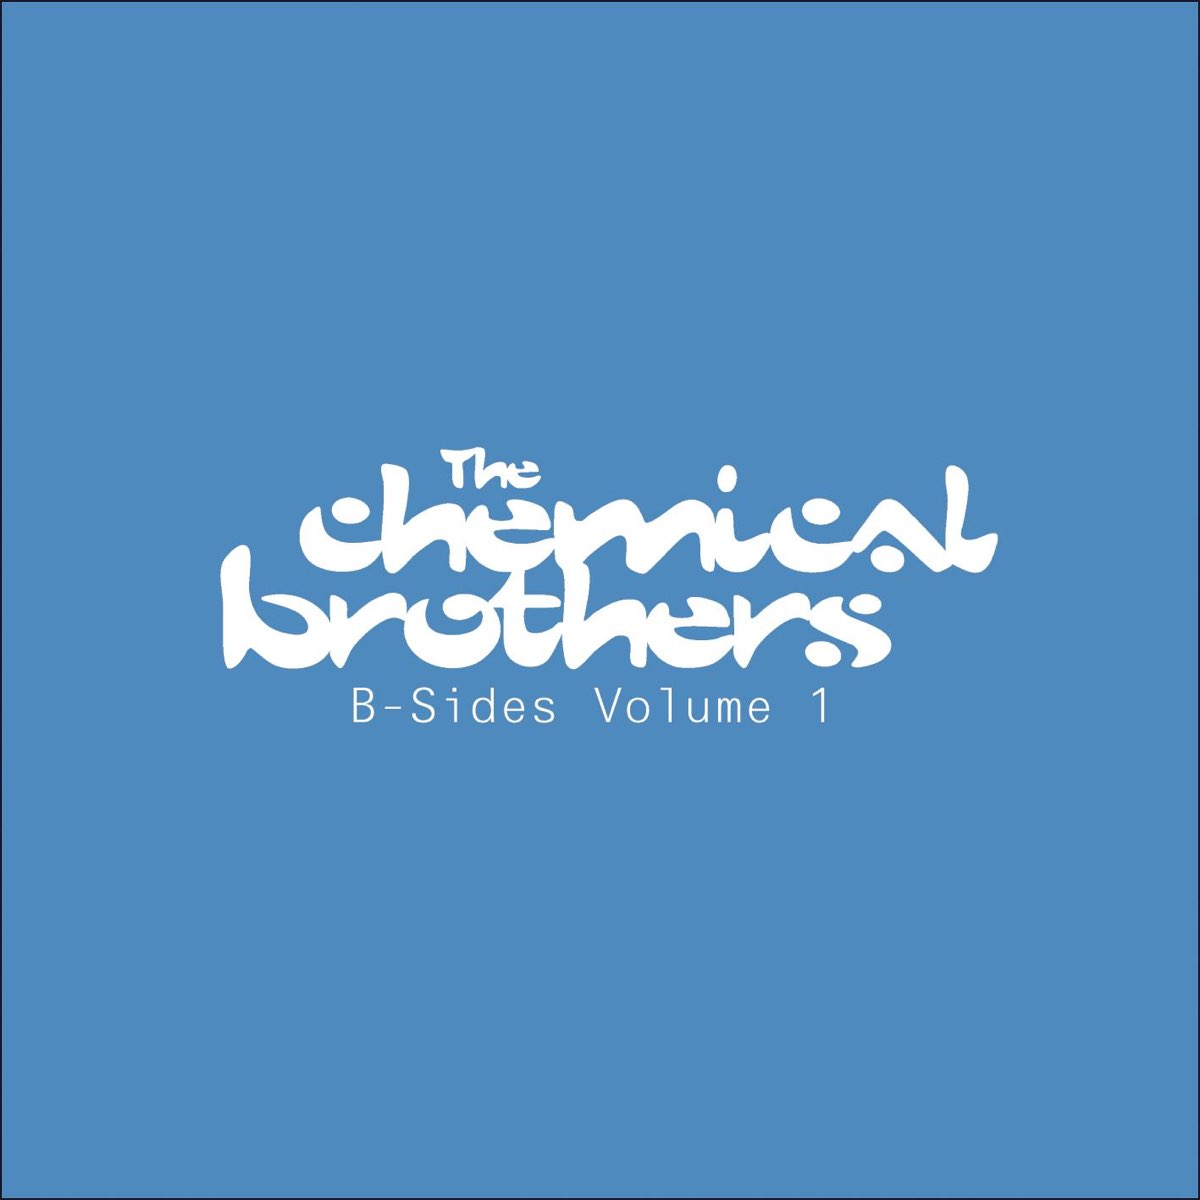 B-Sides, Vol. 1 by The Chemical Brothers on Apple Music